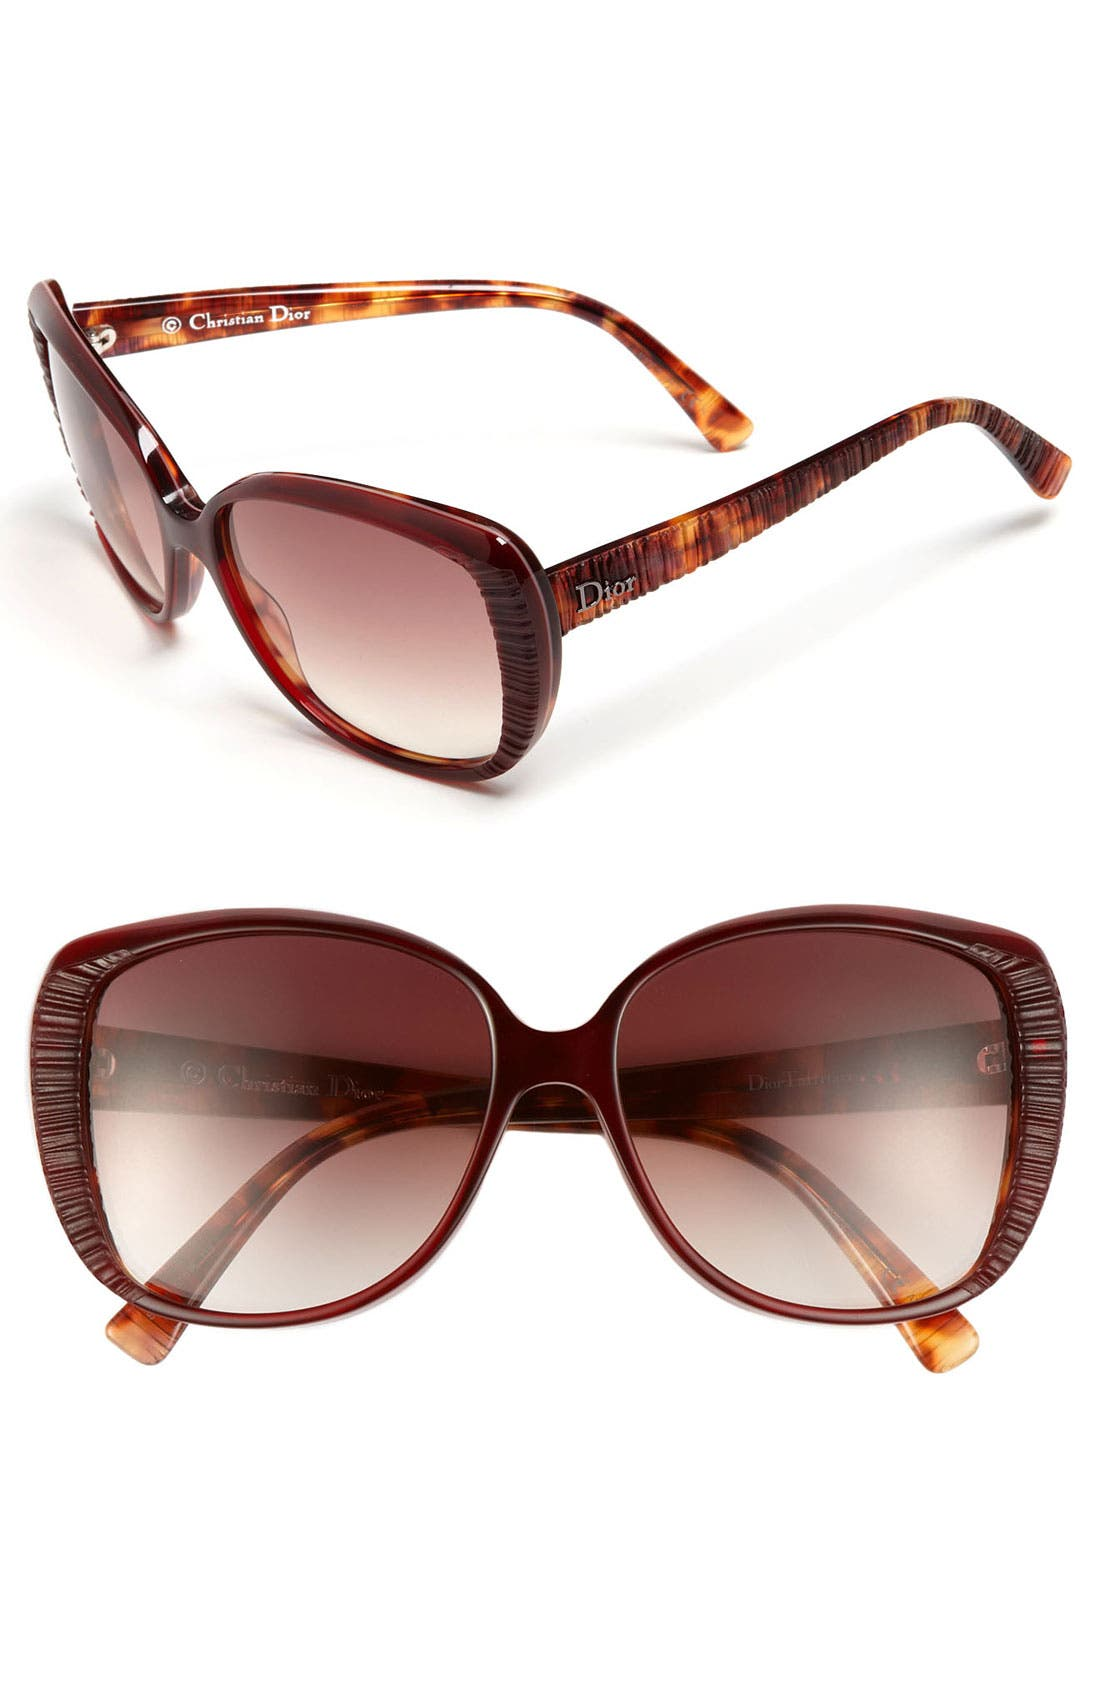 Alternate Image 1 Selected - Dior 'Taffetas 2' 57mm Sunglasses